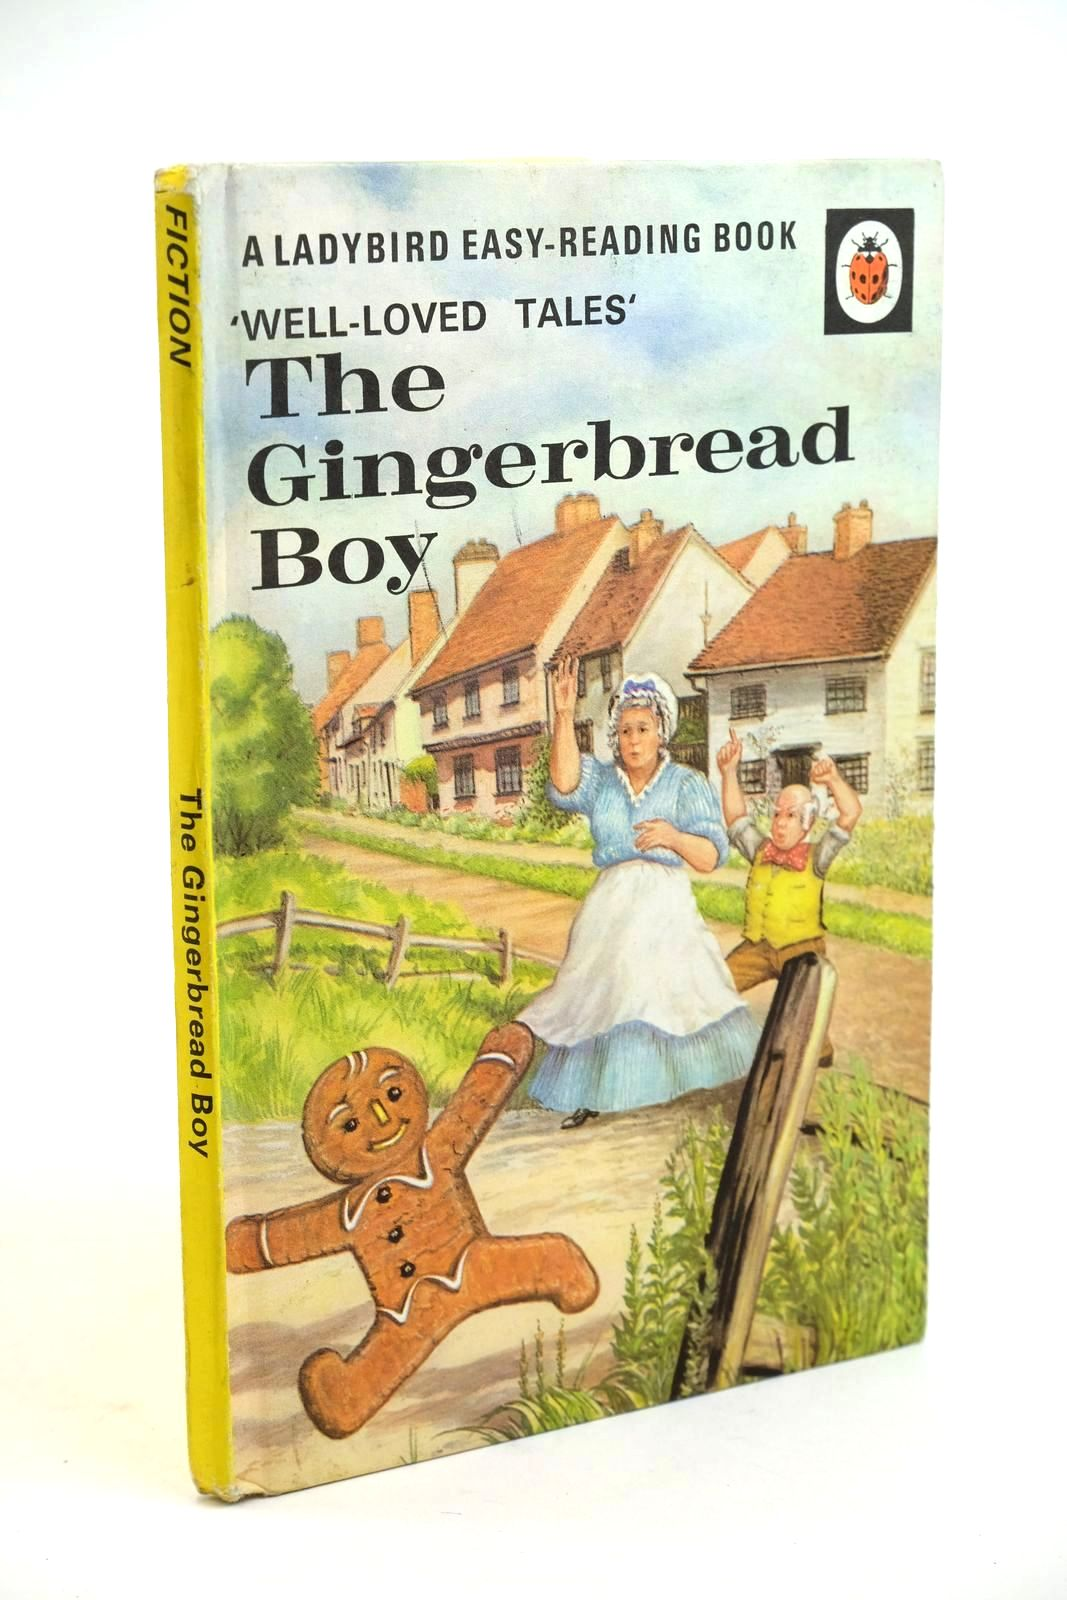 Photo of THE GINGERBREAD BOY written by Southgate, Vera illustrated by Lumley, Robert published by Wills & Hepworth Ltd. (STOCK CODE: 1321456)  for sale by Stella & Rose's Books